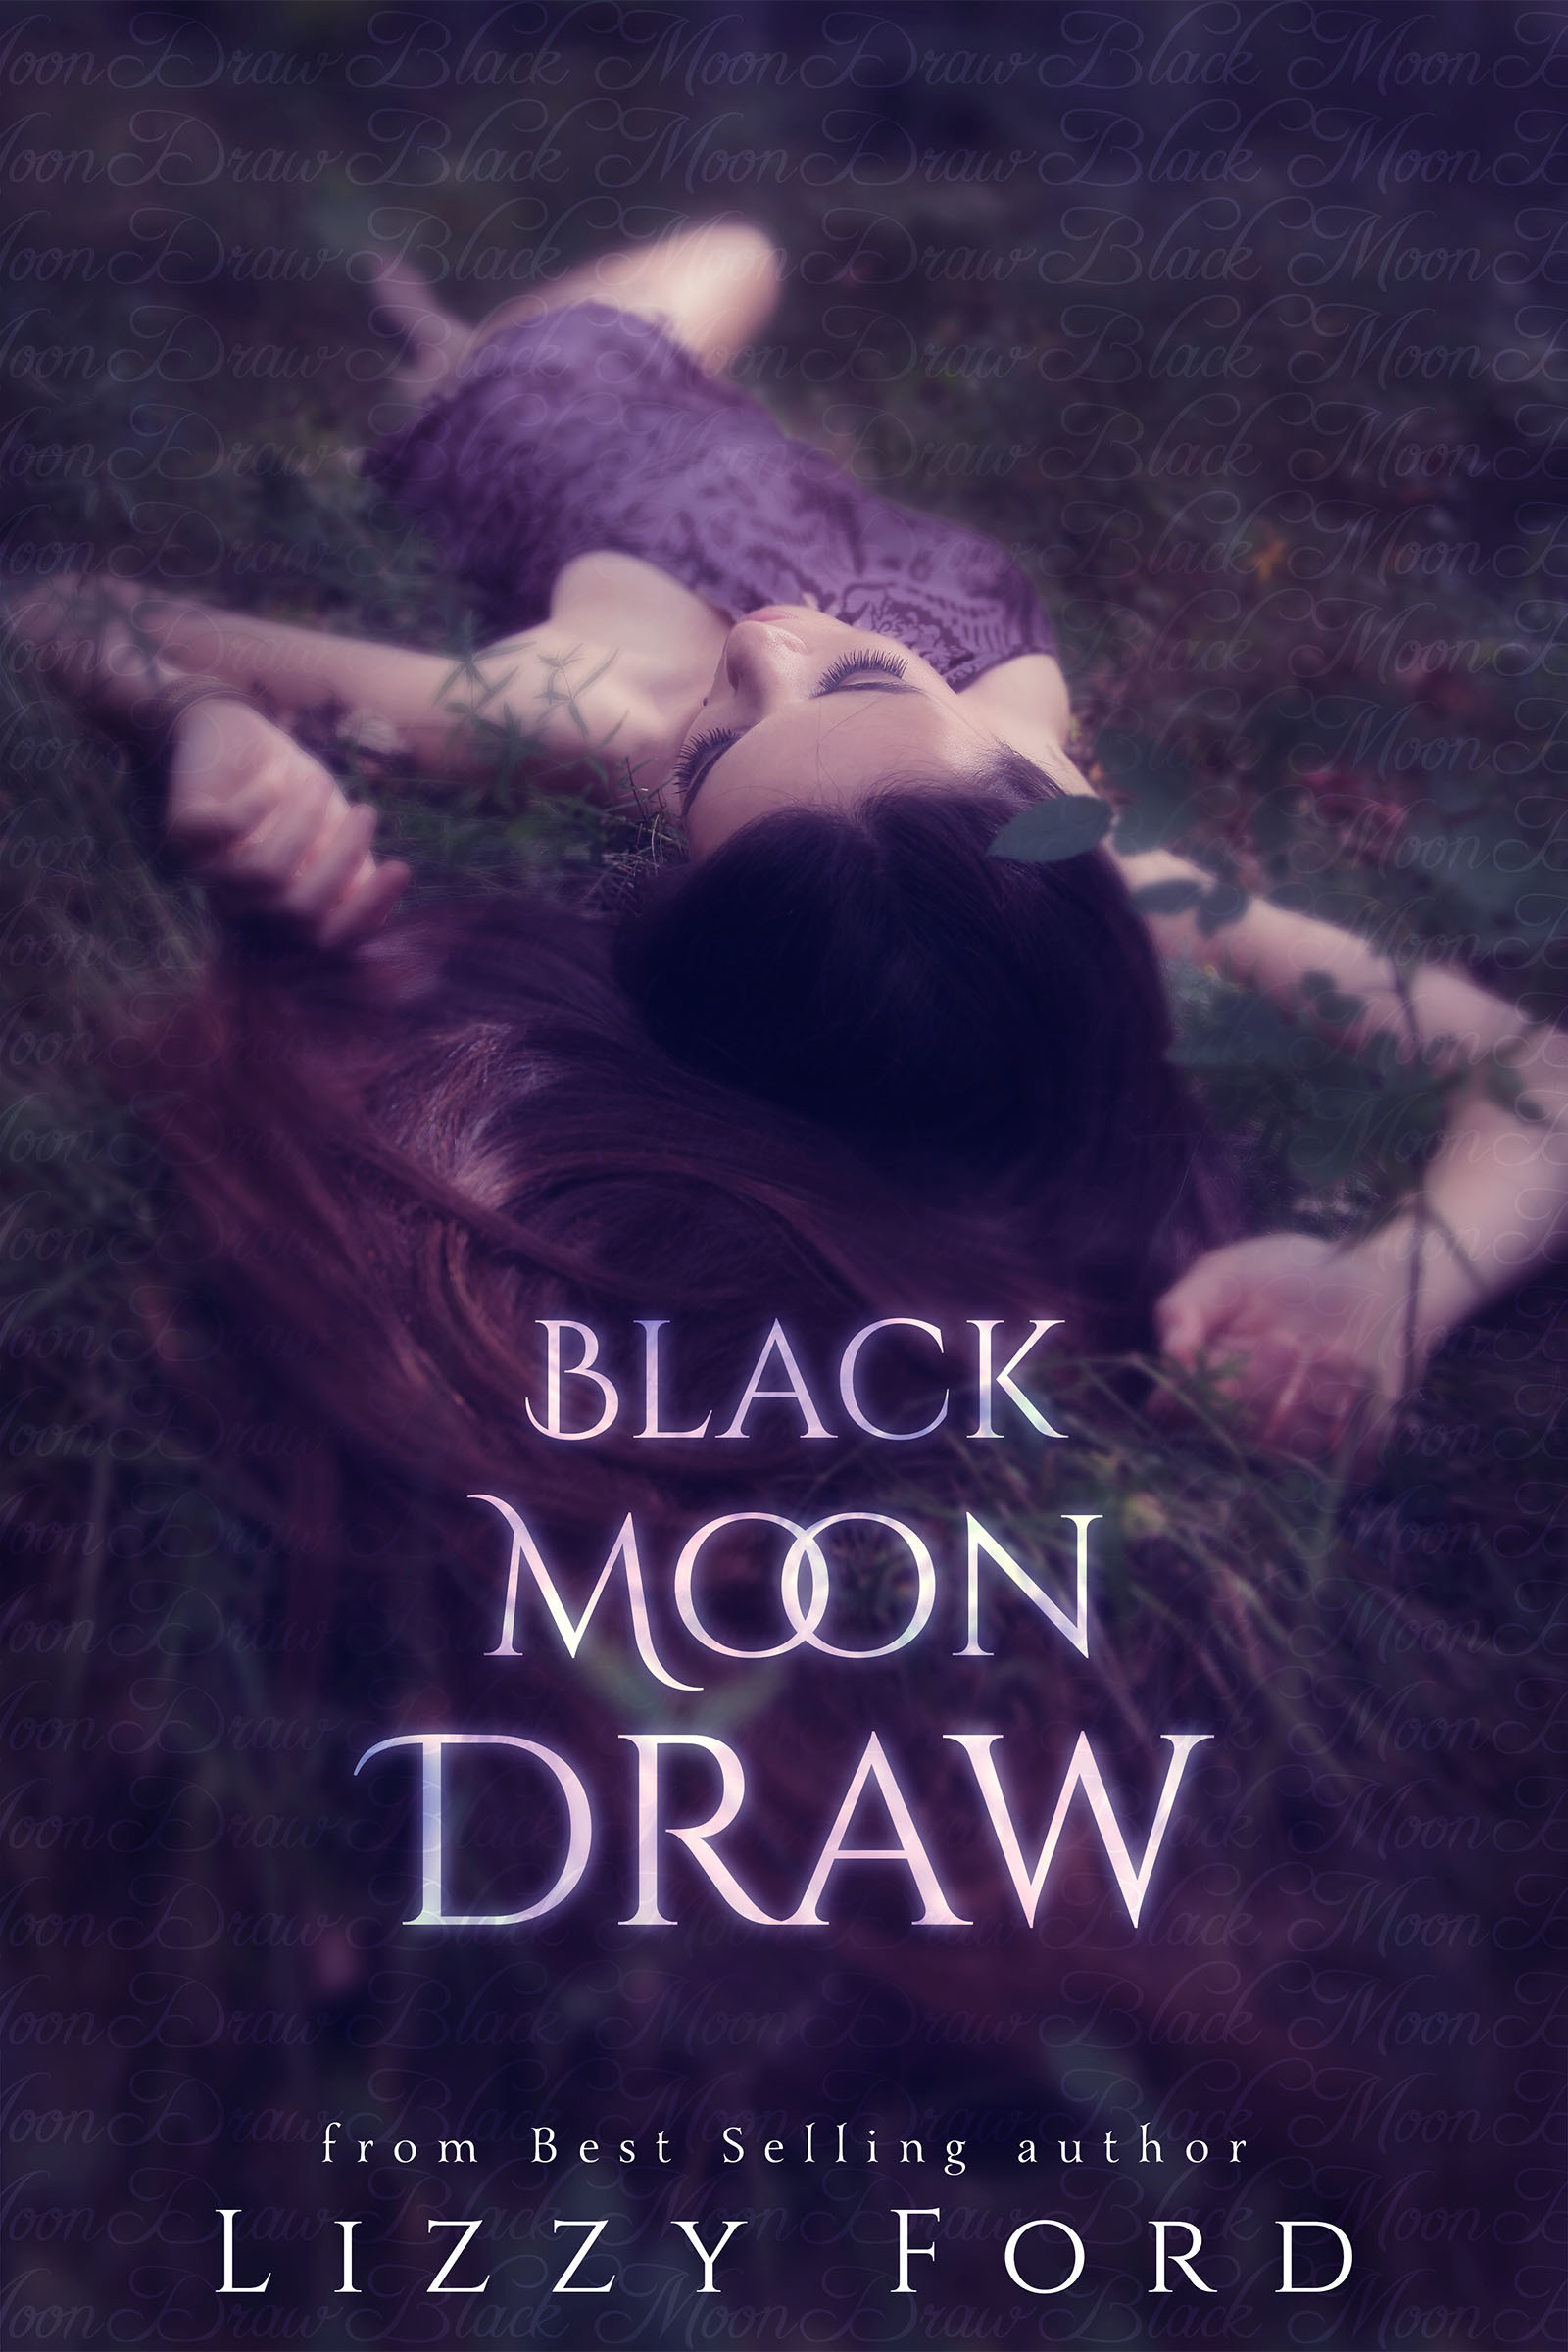 Black Moon Draw